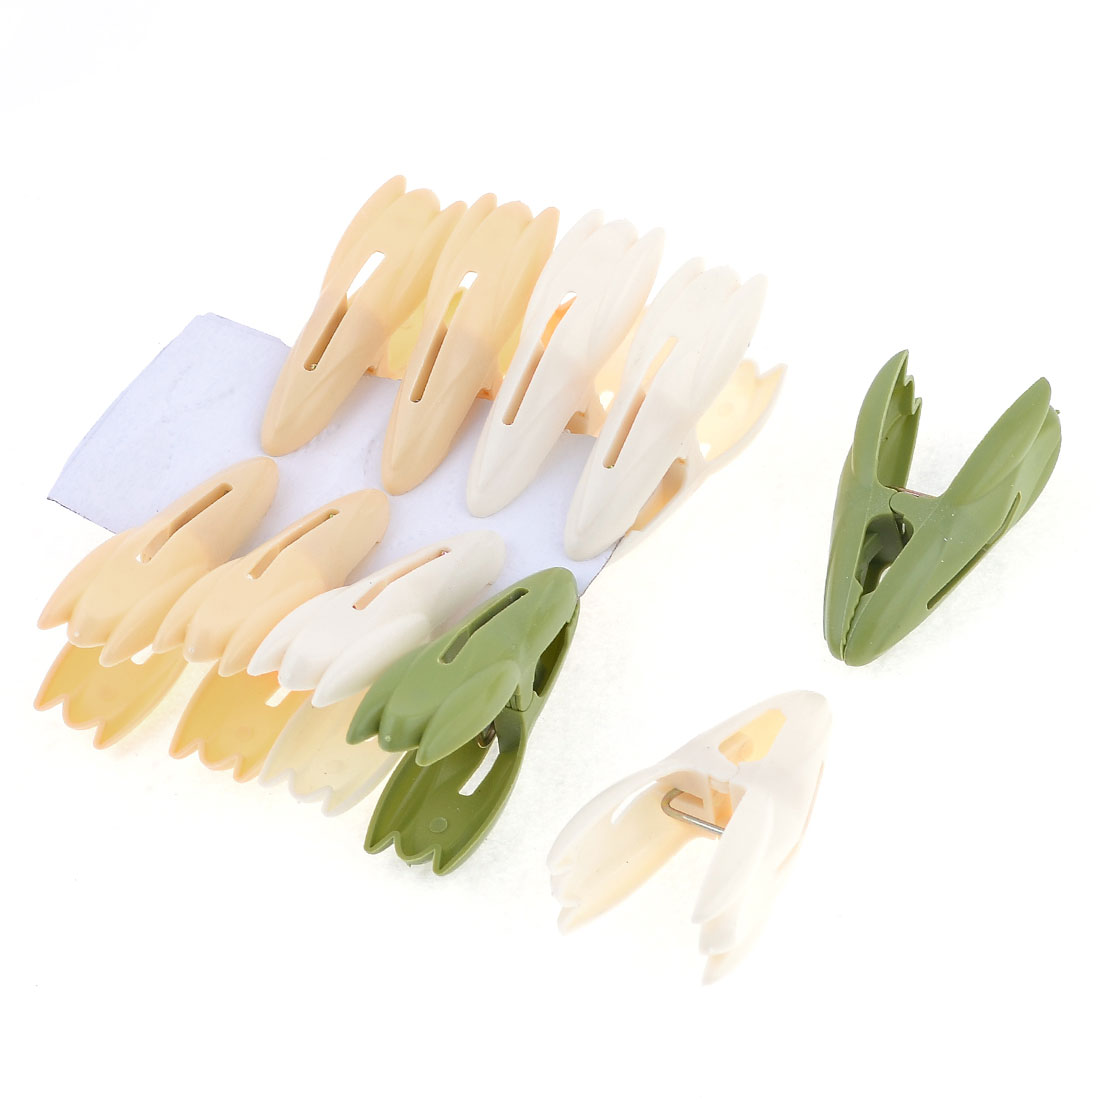 10 Pcs Laundry Army Green Apricot Plastic Rocket Shape Clothespins Clips